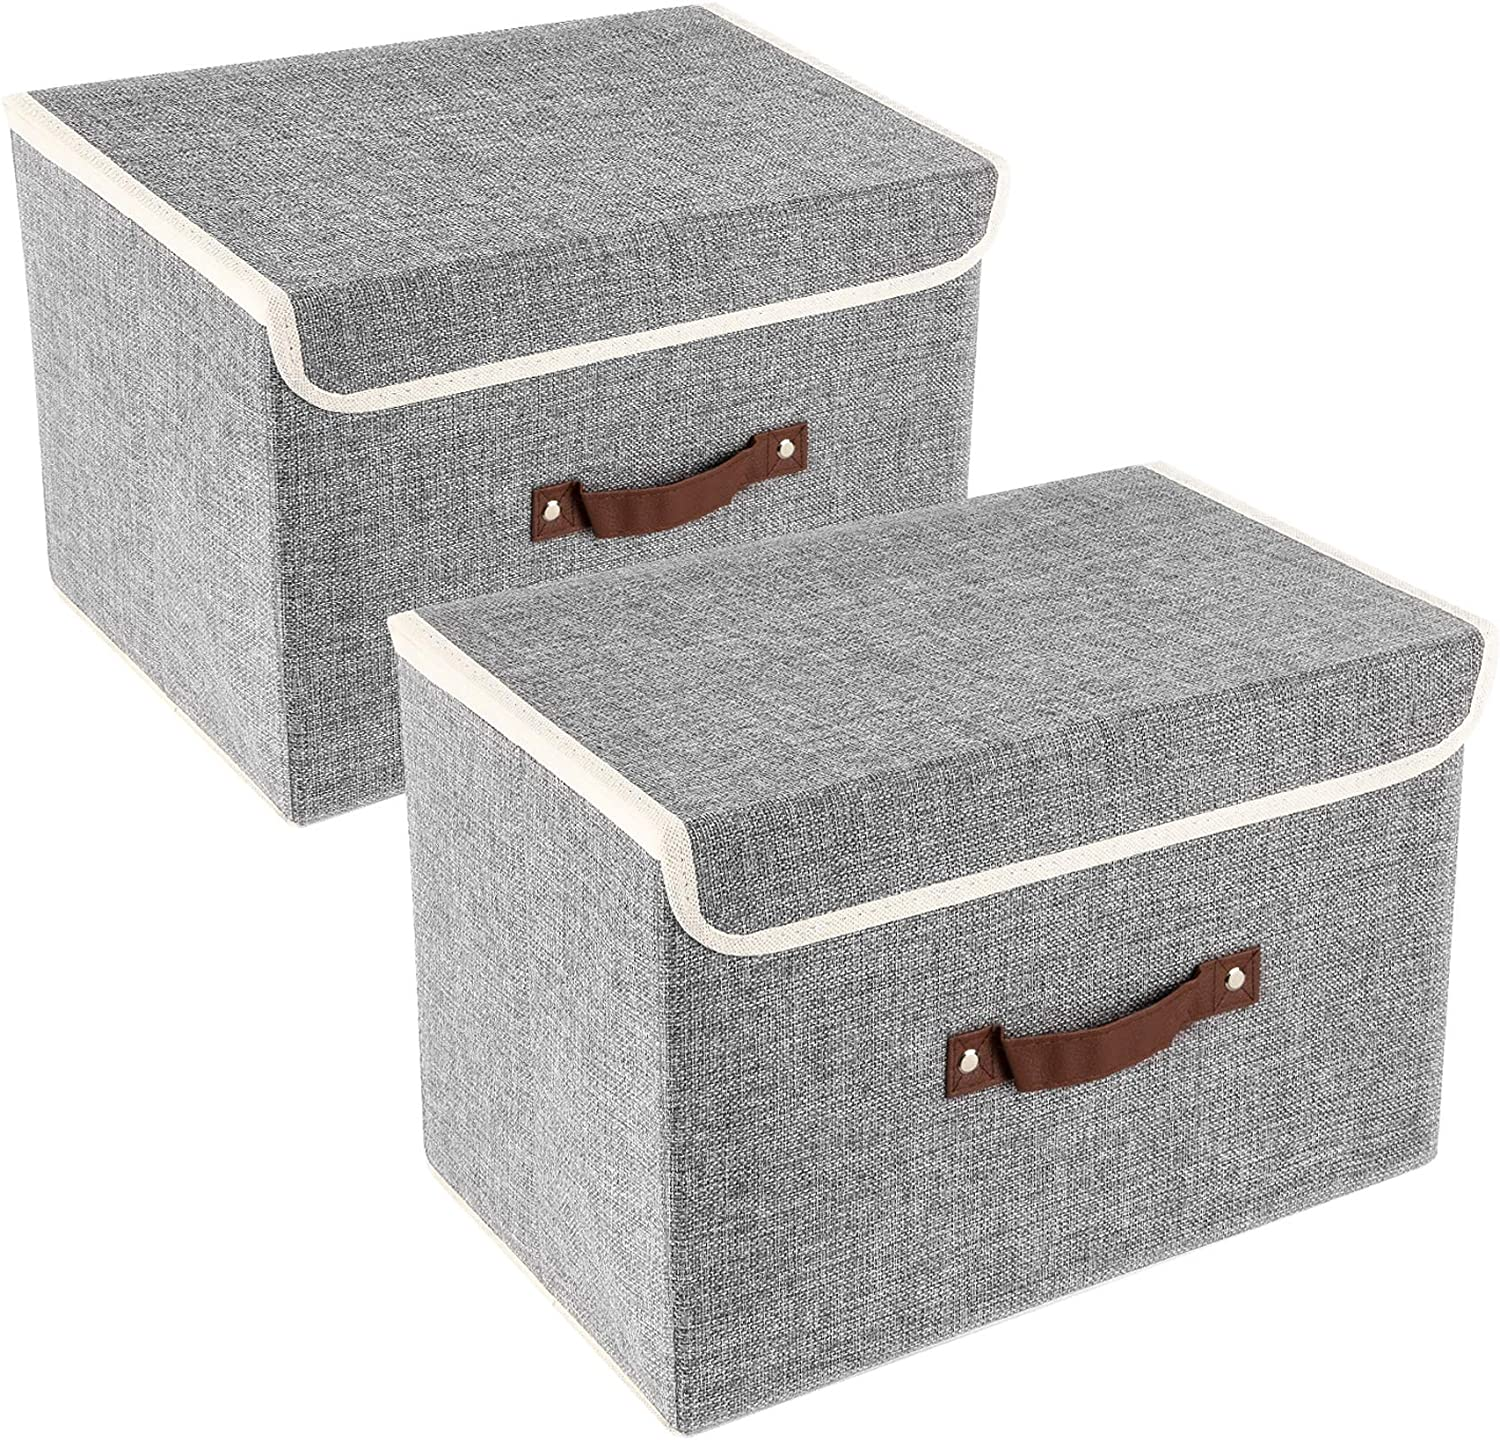 UMI. by Amazon 2 Pack Foldable Storage Boxes with Lids, Storage bins in Cotton and Linen - Grey